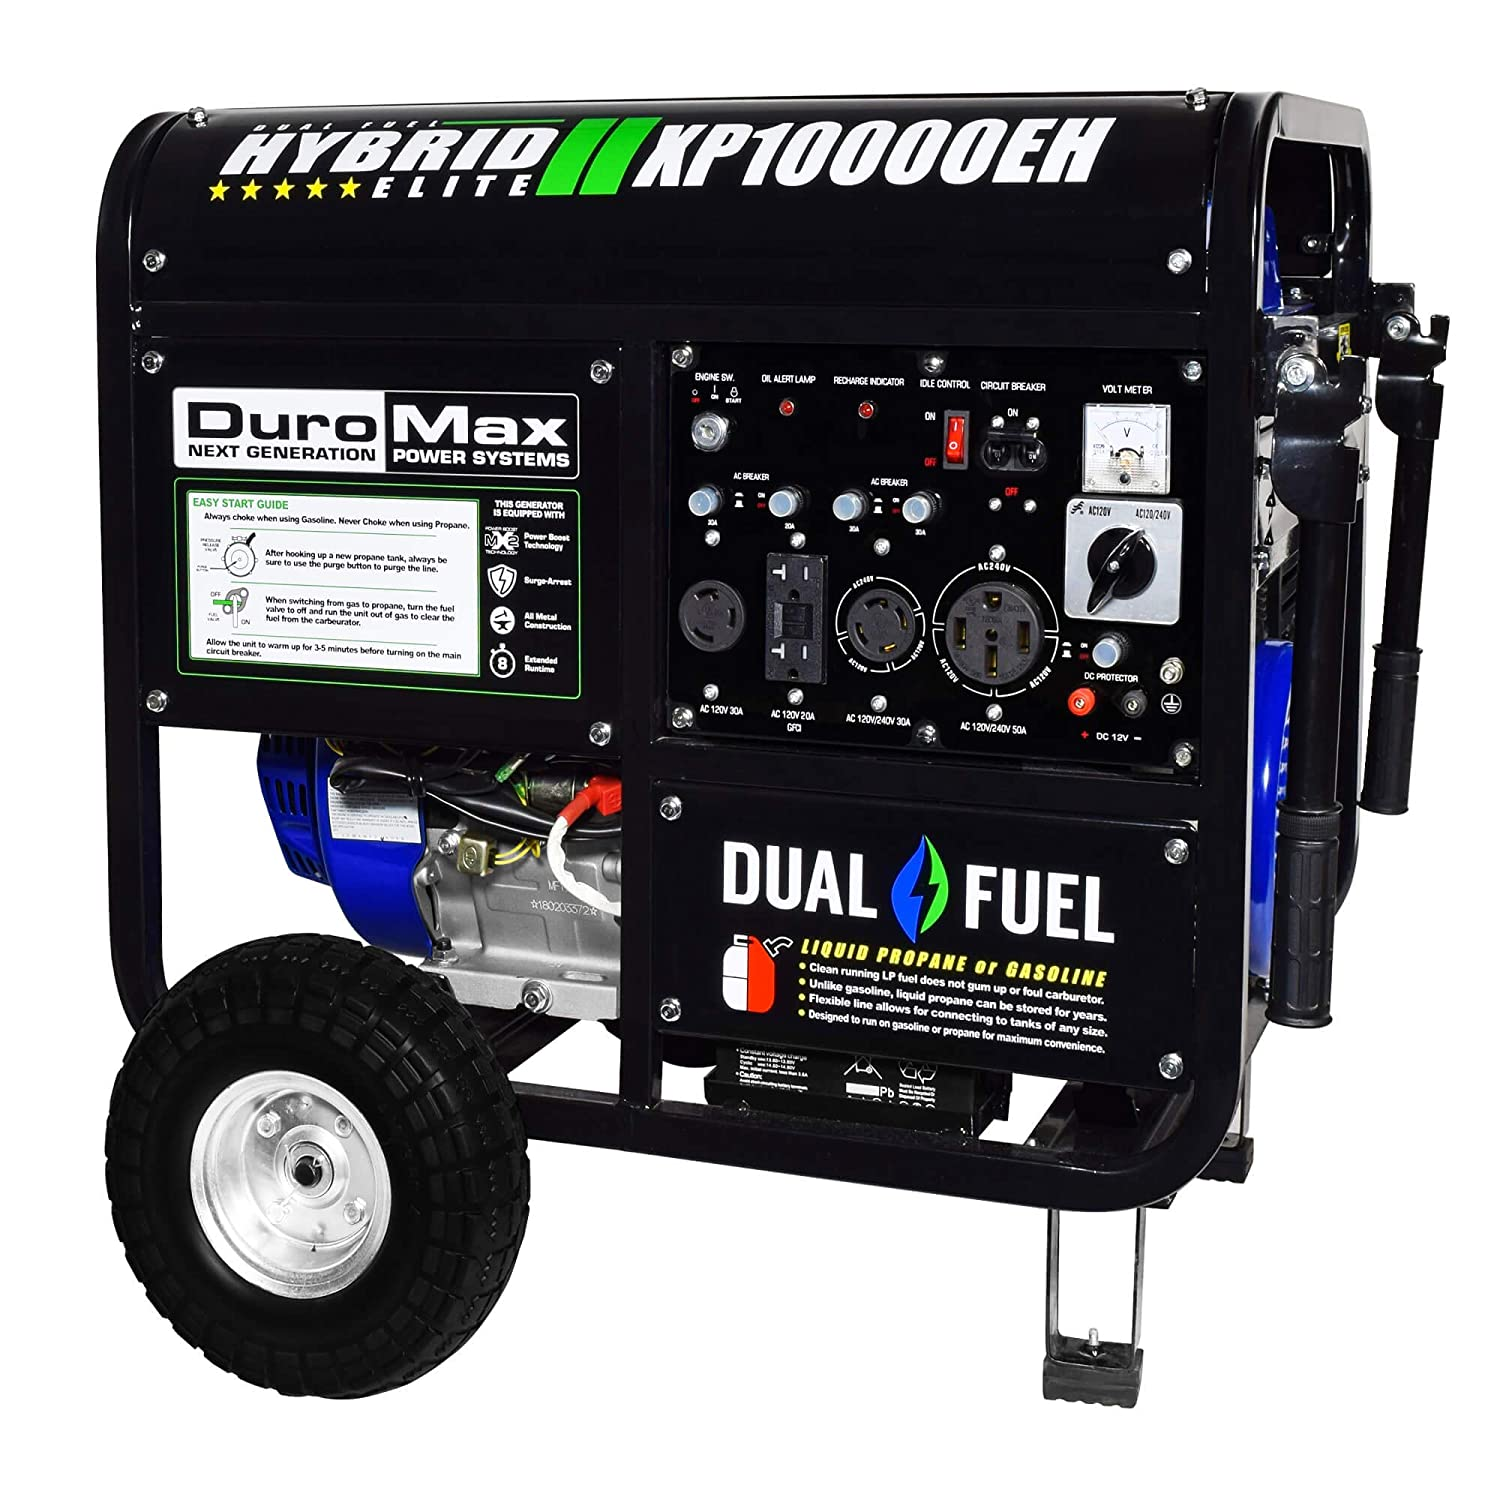 Duromax Xp10000eh 10000 Watt Dual Fuel Hybrid Generator House Generators But Also Has Been Wiring Portable Into W Elec Start 50 State Garden Outdoor